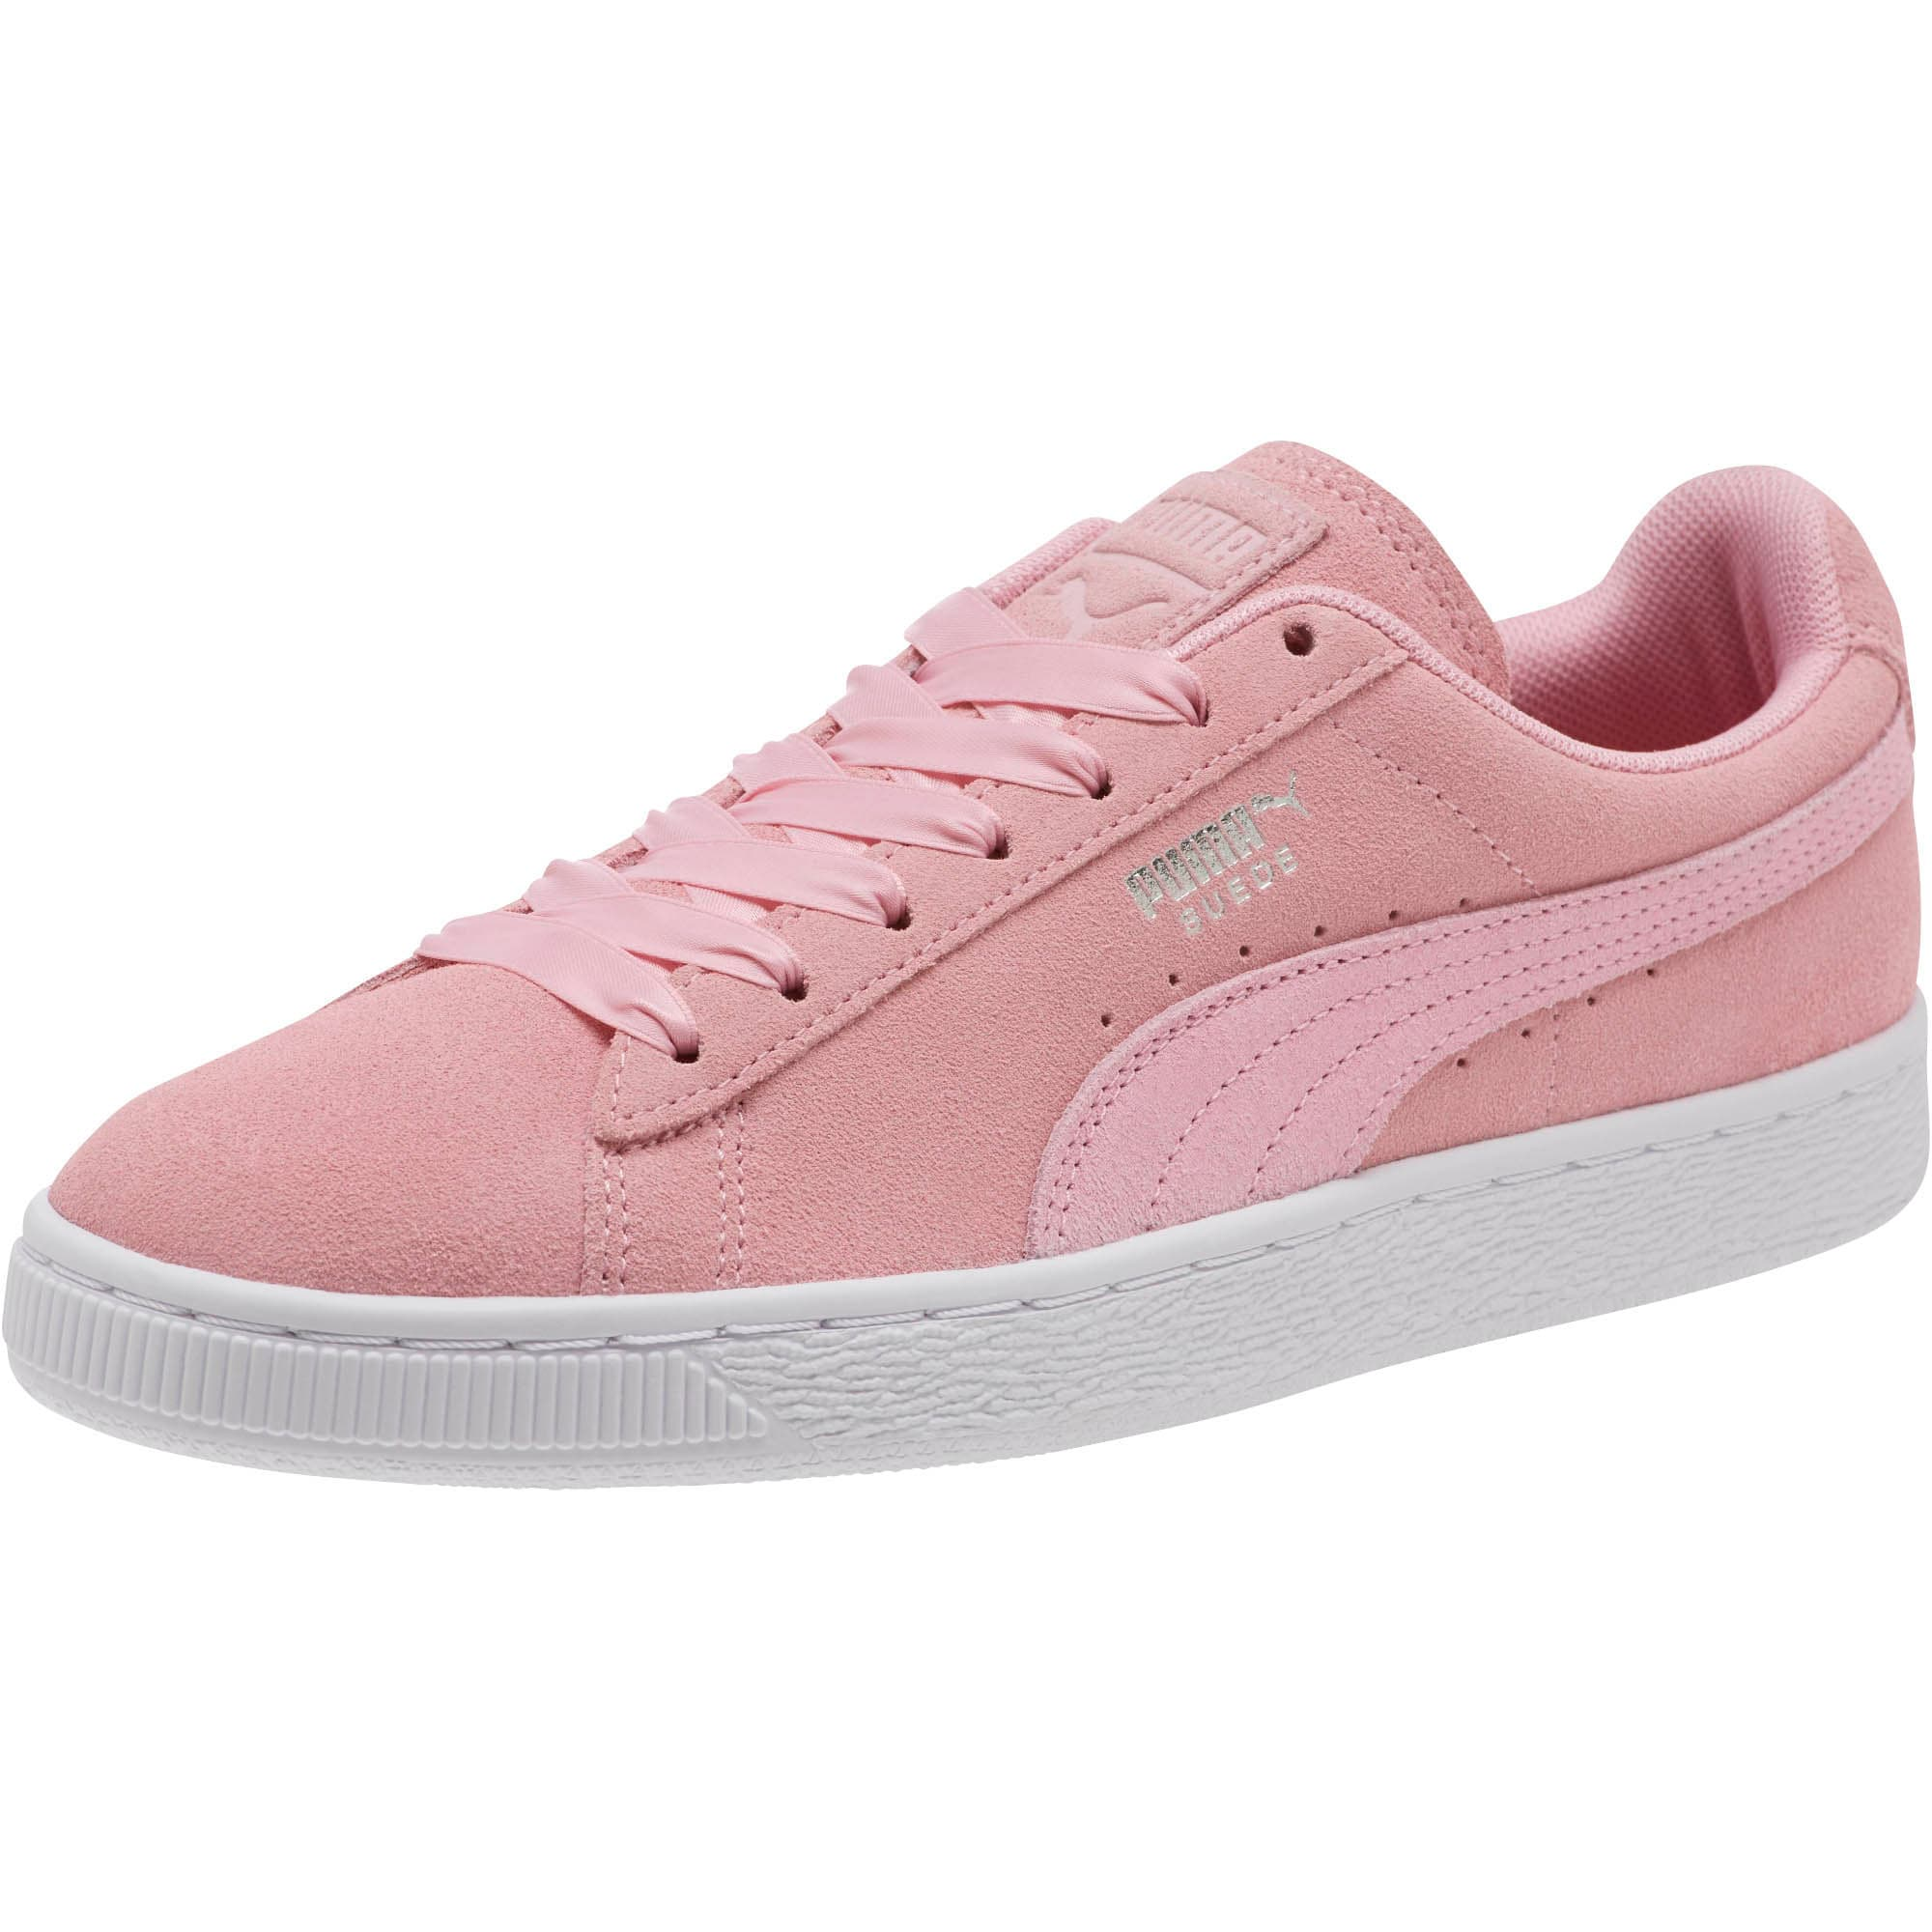 new style 91ff4 6e16a Suede Galaxy Women's Sneakers